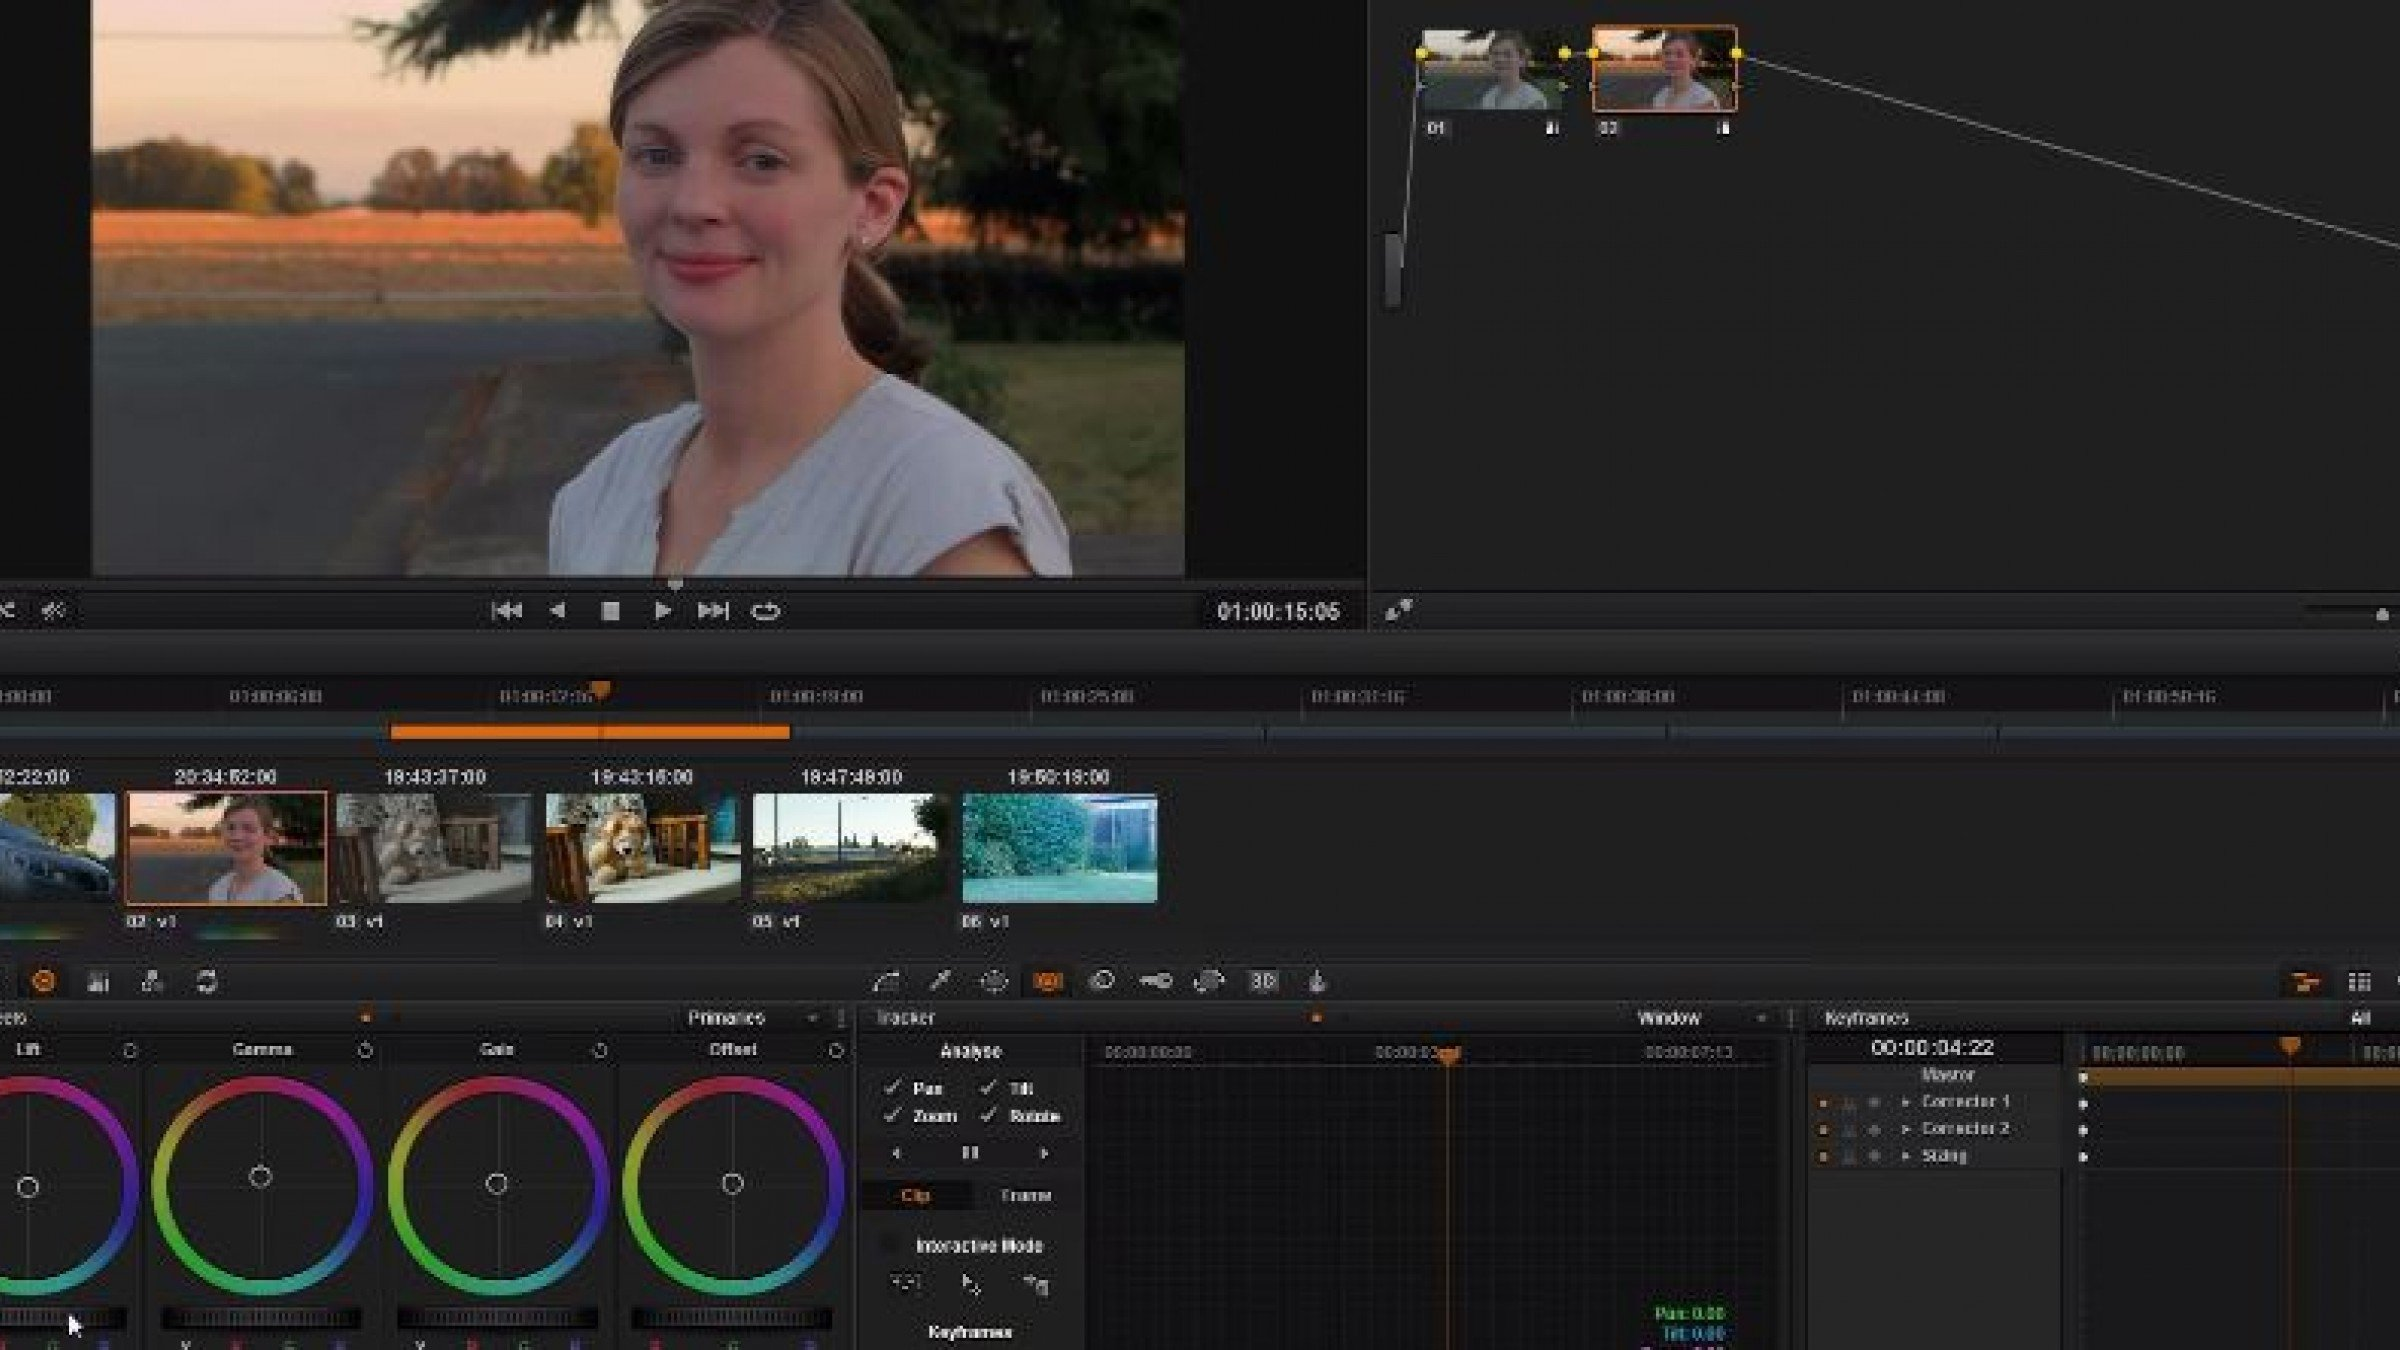 New BMPCC Owners, Here's How to Get Snappy, Vibrant Color from Your Flat Footage